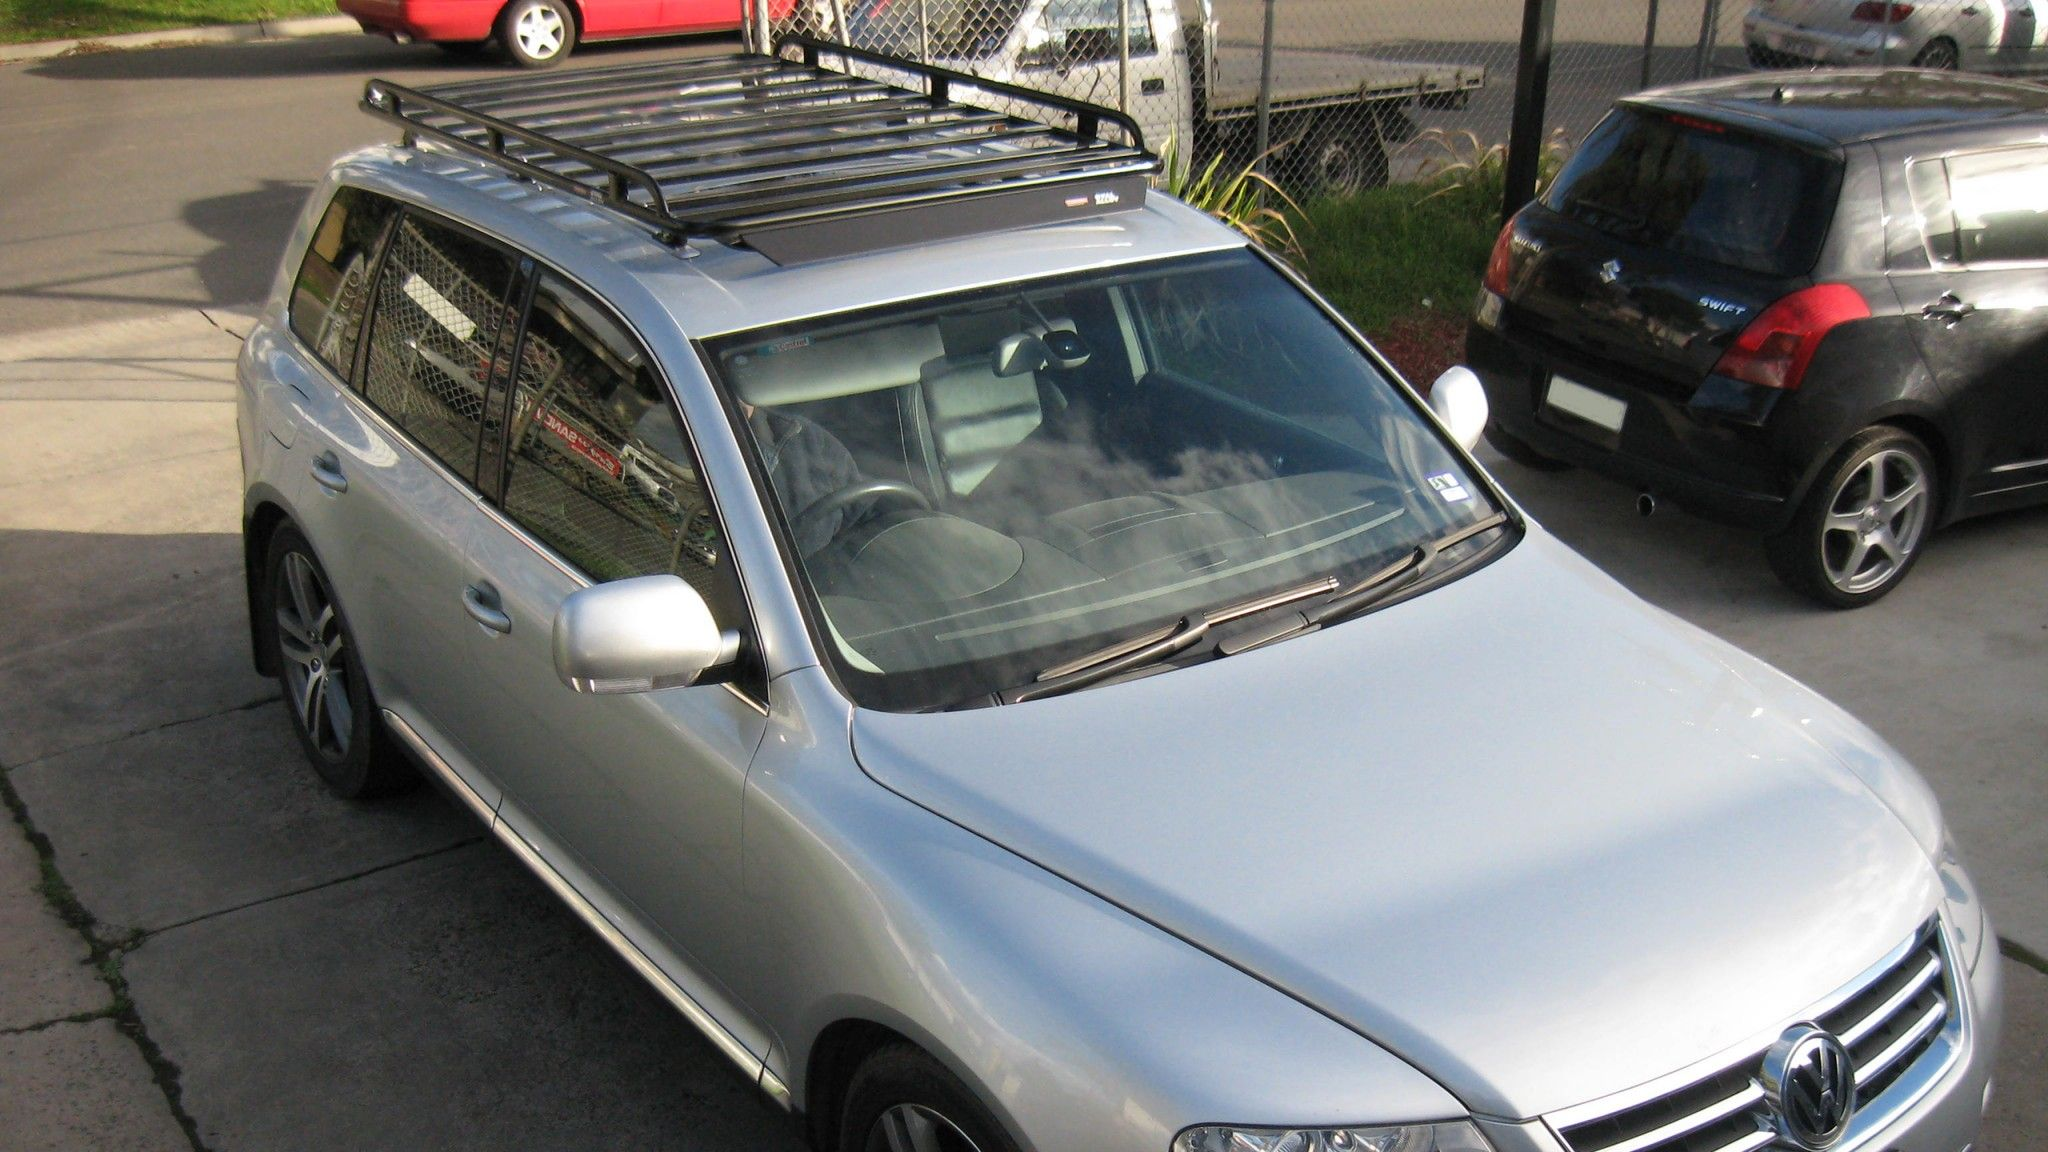 K9 Roof Rack Club Touareg Forums Roof Rack Car Roof Racks Roof